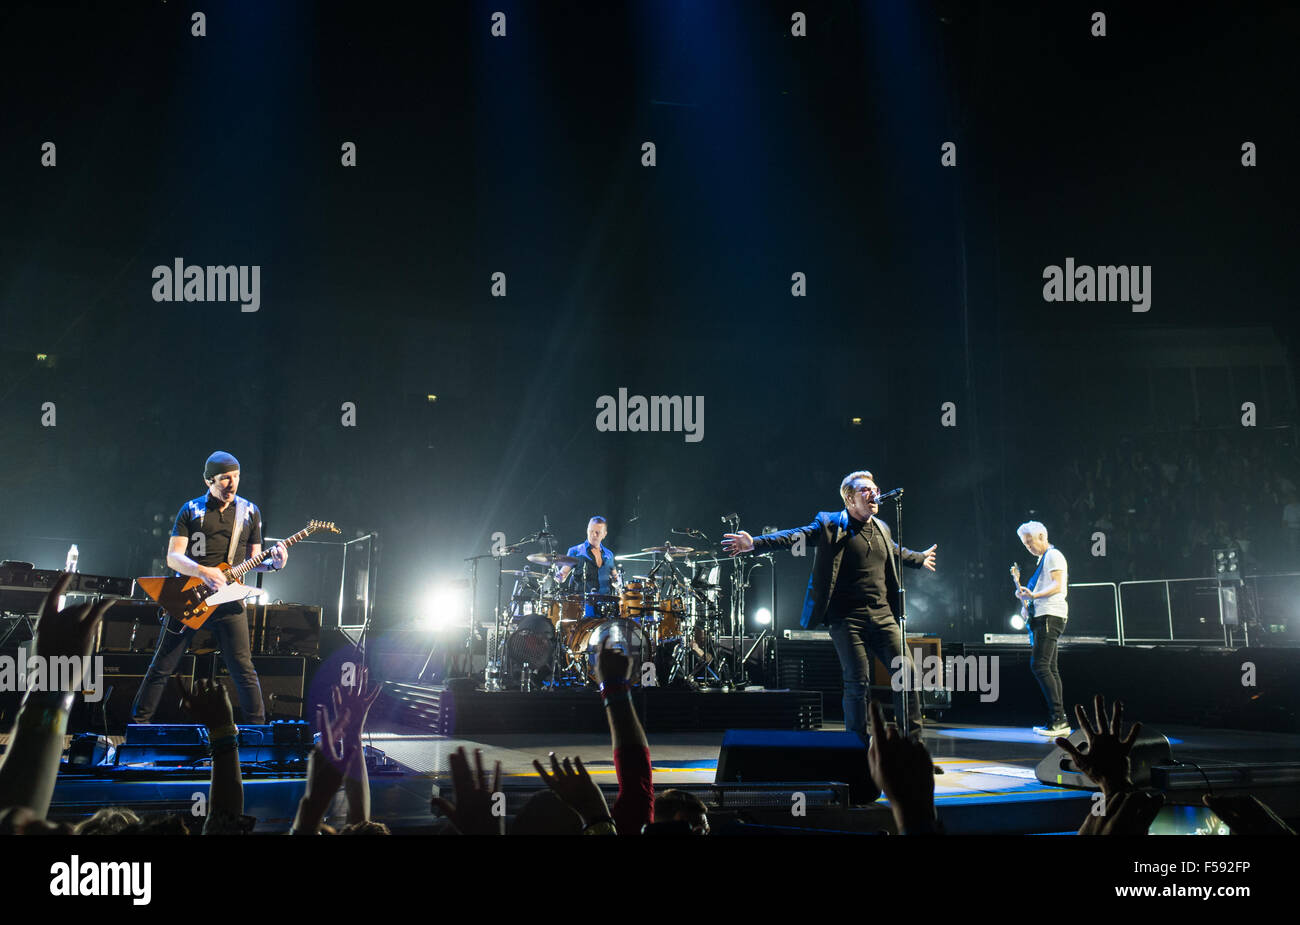 London, UK. 29th October, 2015. U2 at London O2 on the Innocence and Experience tour Credit:  david pearson/Alamy Stock Photo